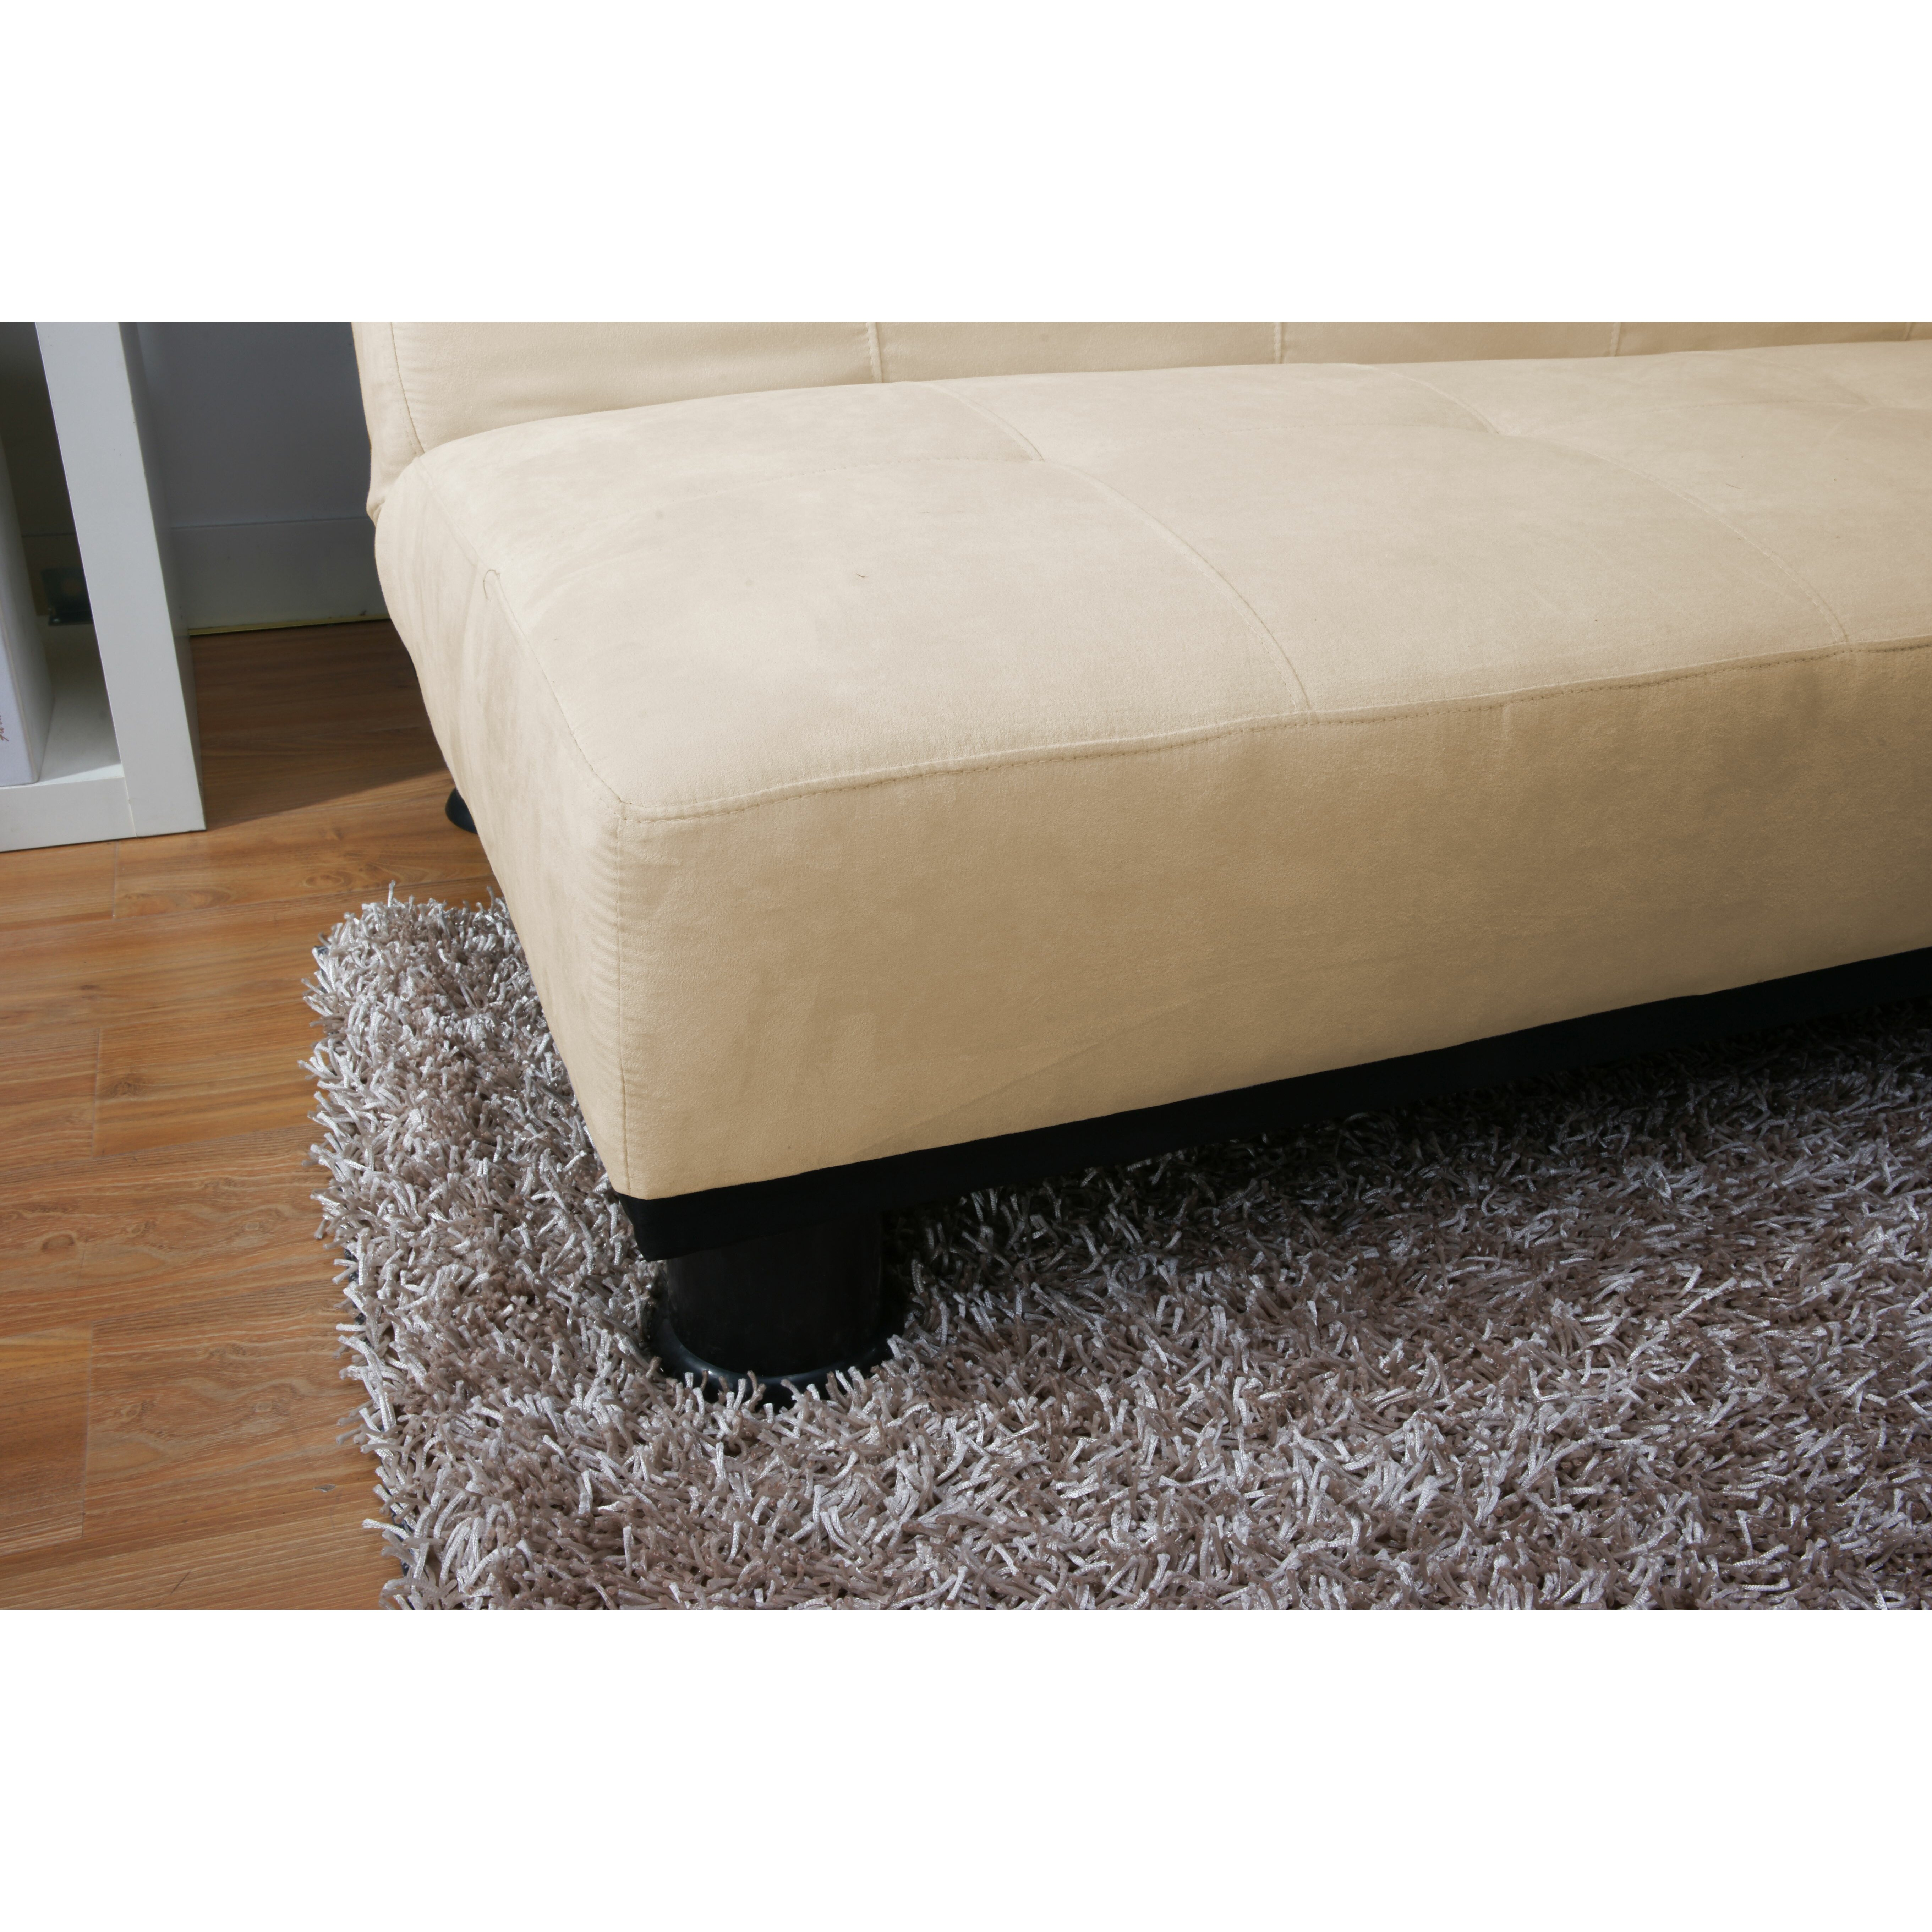 Leader Lifestyle Ismi 3 Seater Clic Clac Sofa Bed